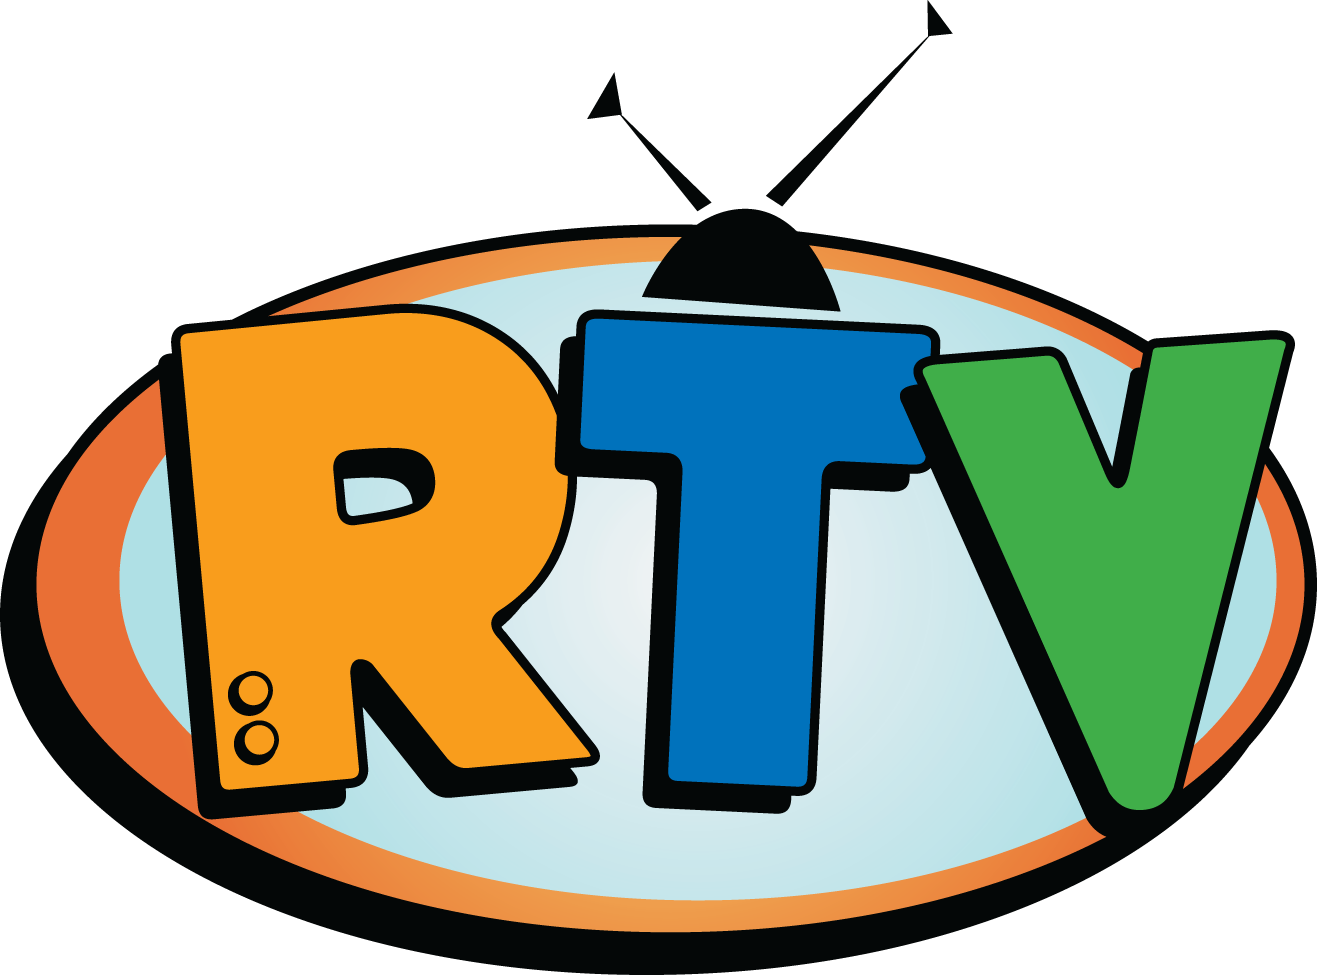 Television clipart classic tv. Wknx logopedia fandom powered